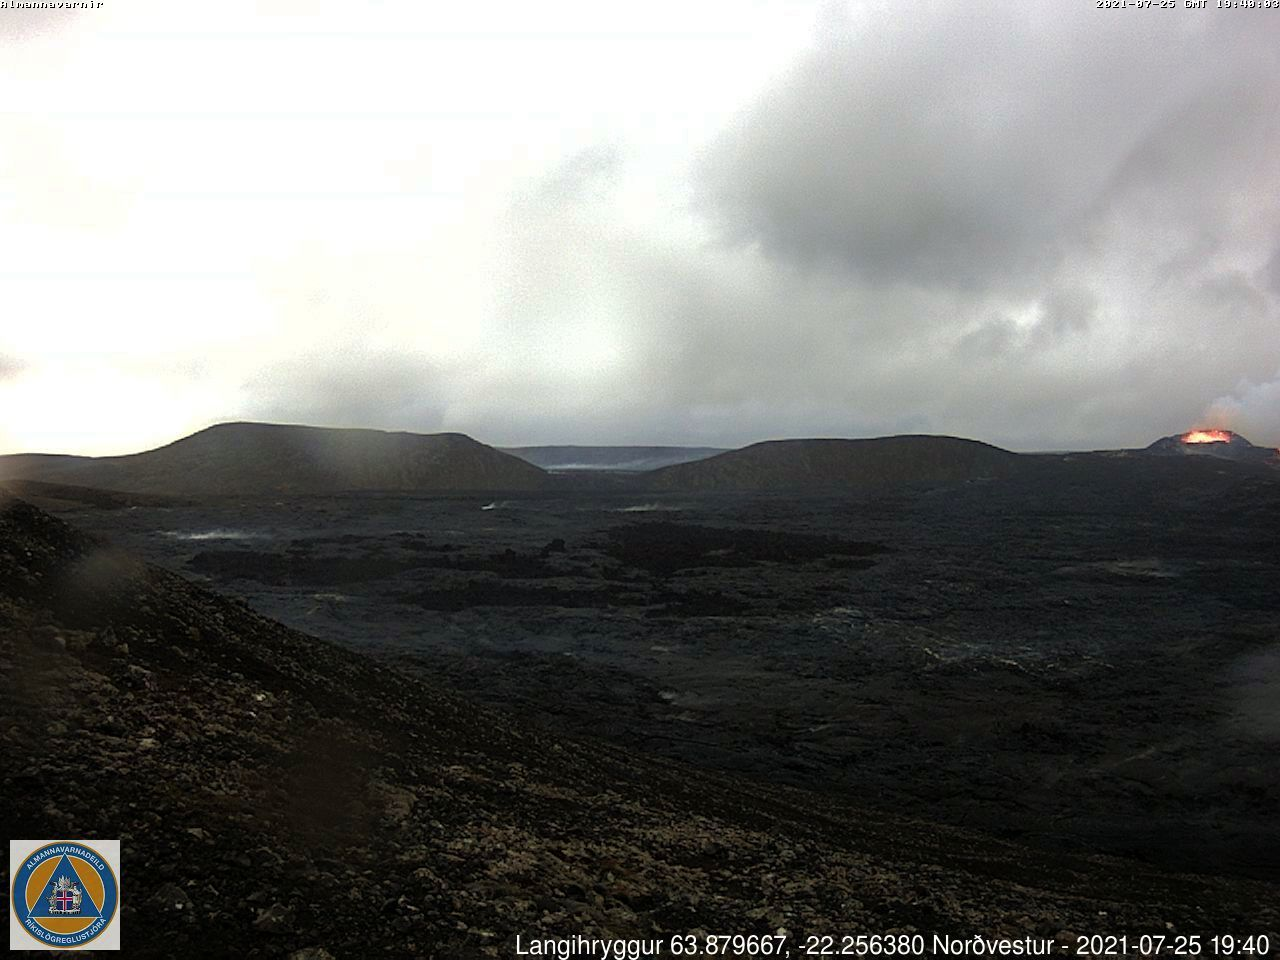 Fagradalsfjall - 25.07.2021, respectively at 7.40 p.m. and 10.00 p.m. - webcam_langihryggur NV